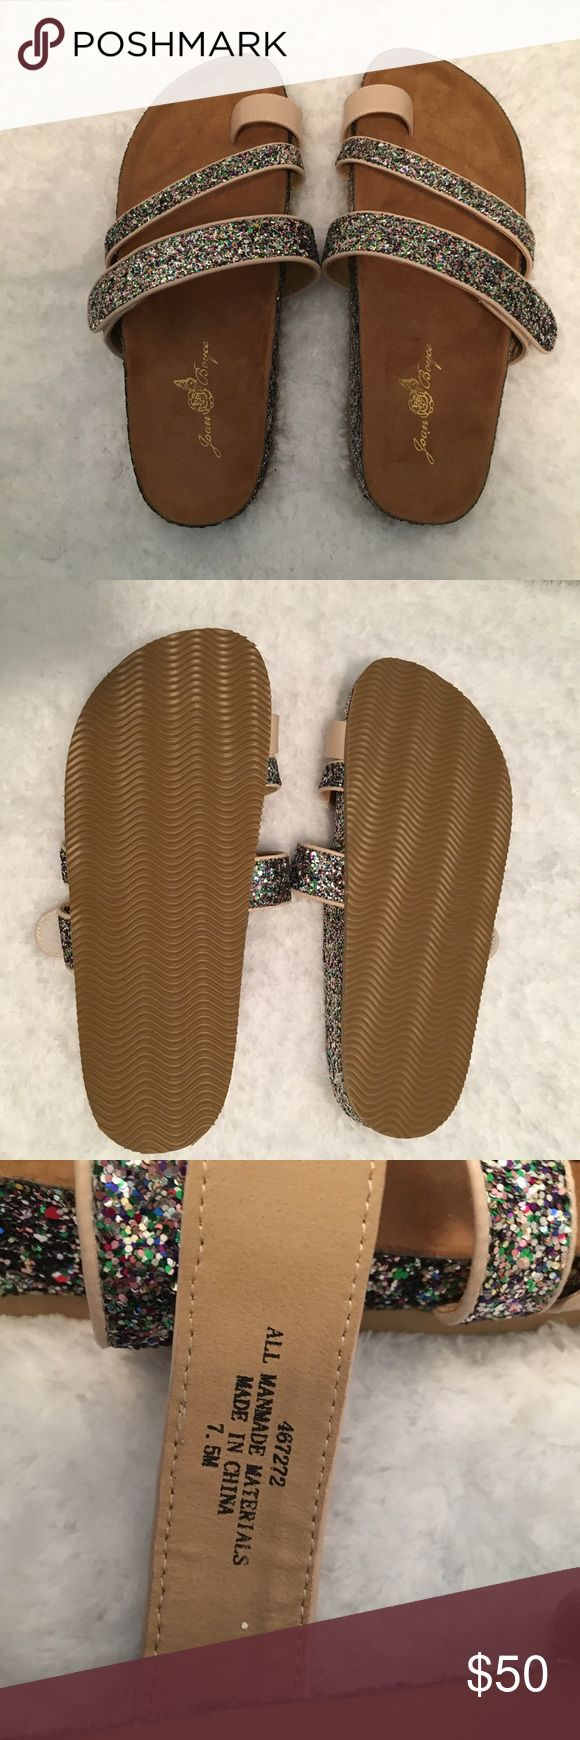 "Joan Boyce ""Mary"" Glitter Comfort Sandals Beautiful multi-colored glitter sandals! 7.5 M. Super comfortable and great for the summer! Never worn! From HSN Shoes Sandals"